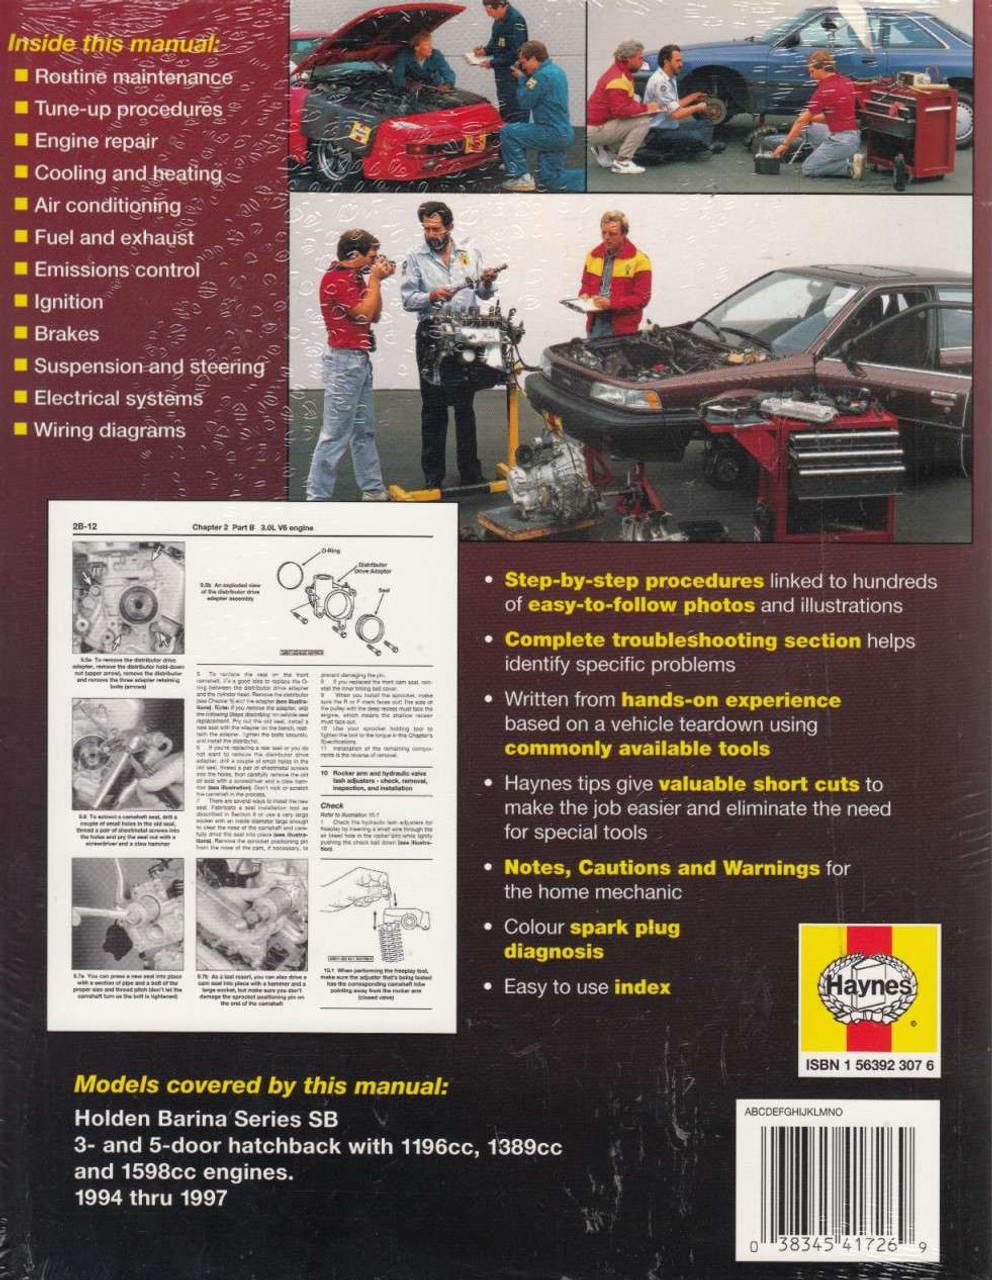 Sb Barina Wiring Diagram Free Download 1994 Holden Stereo Series 1997 Workshop Manual